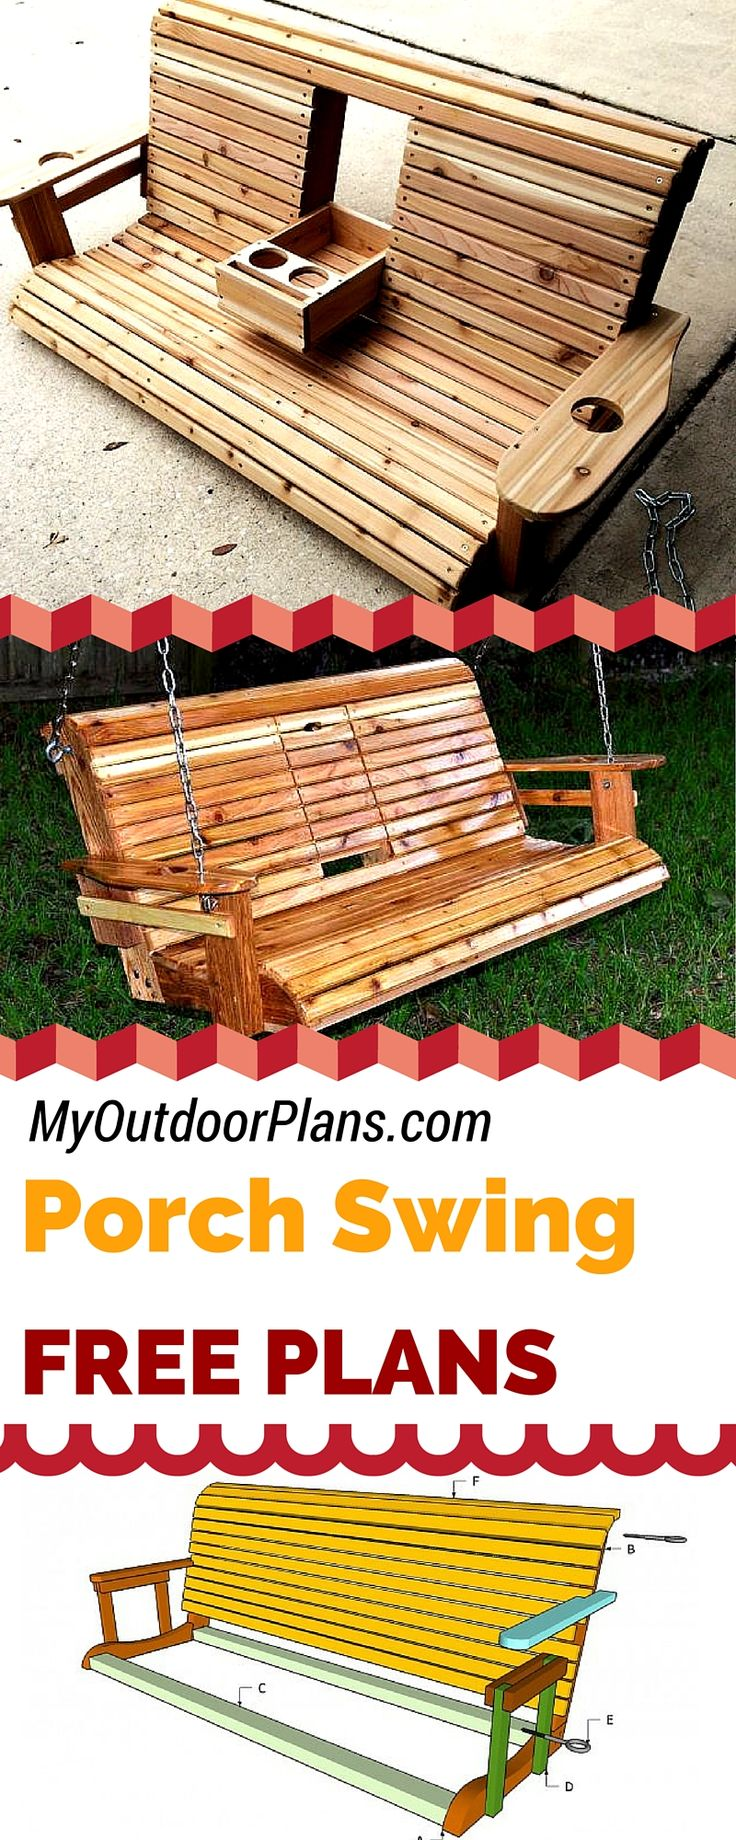 Free porch swing plans - Learn how to build a porch swing with my free plans and...